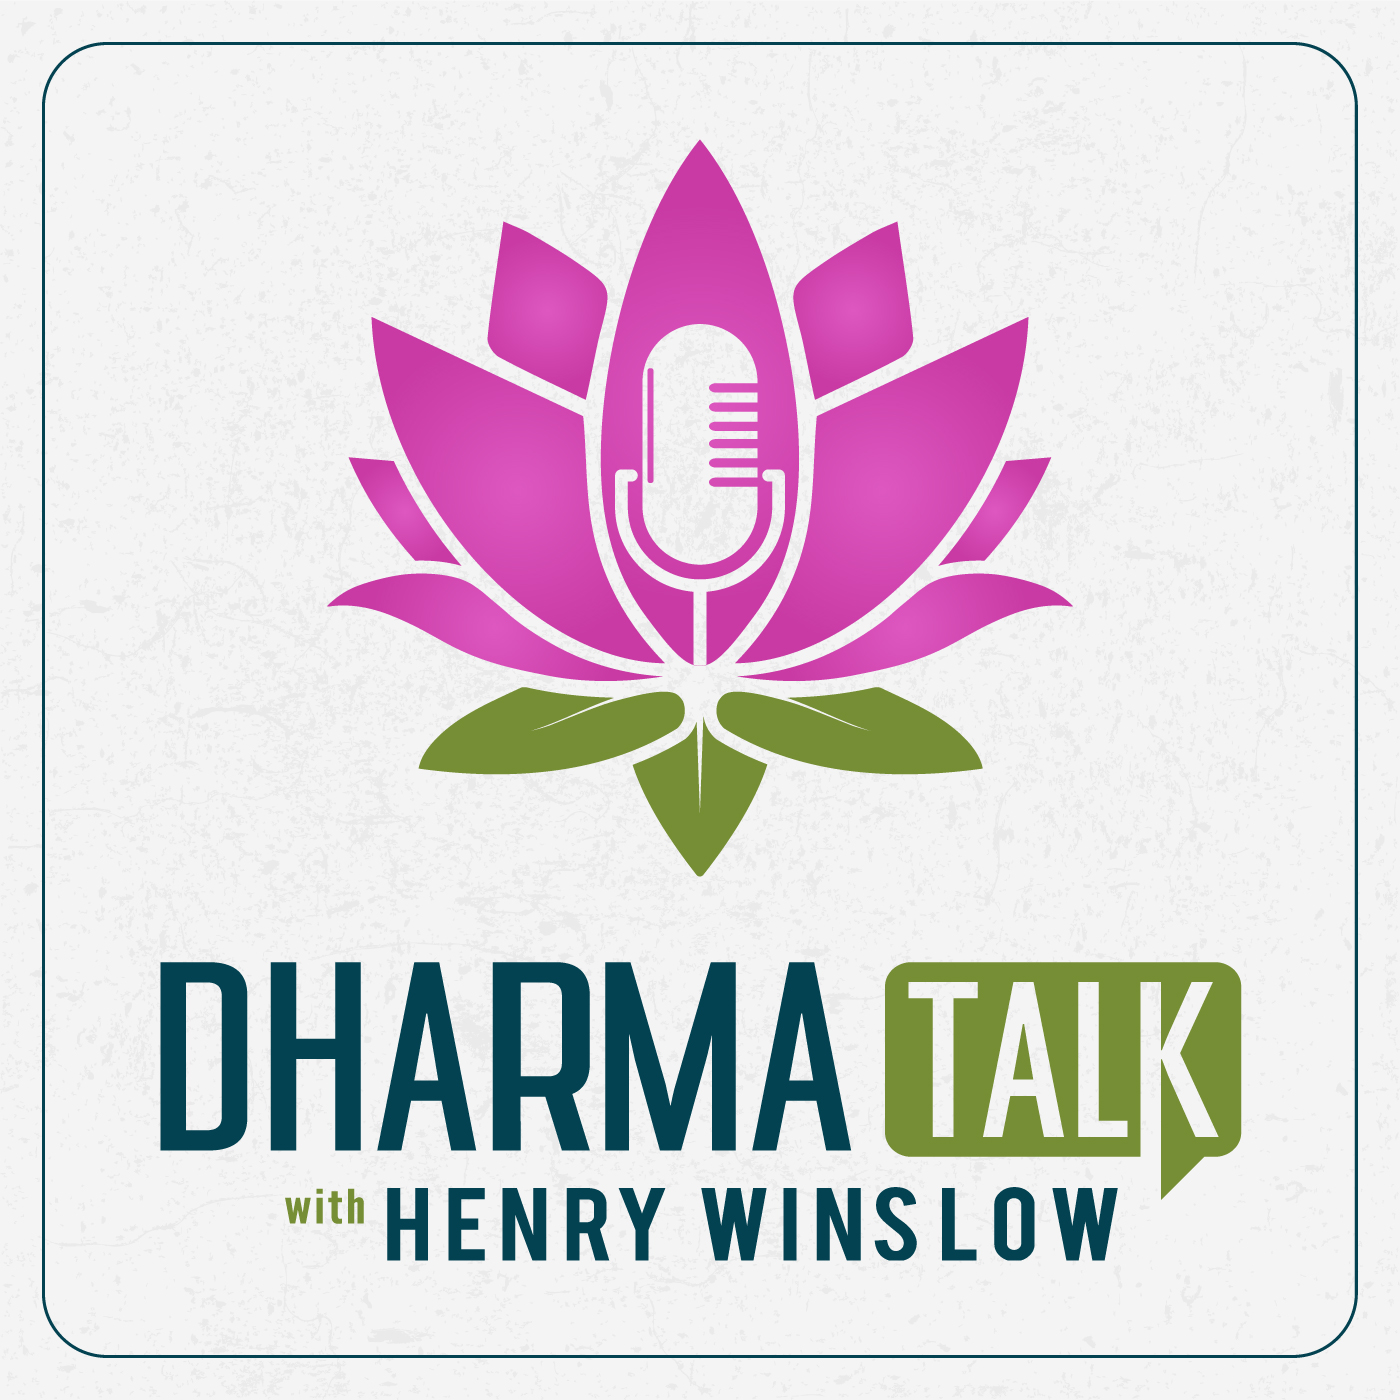 Dharma Talk with Henry Winslow - Episode 005: Slowing Down to Heal with Gianna Purcell